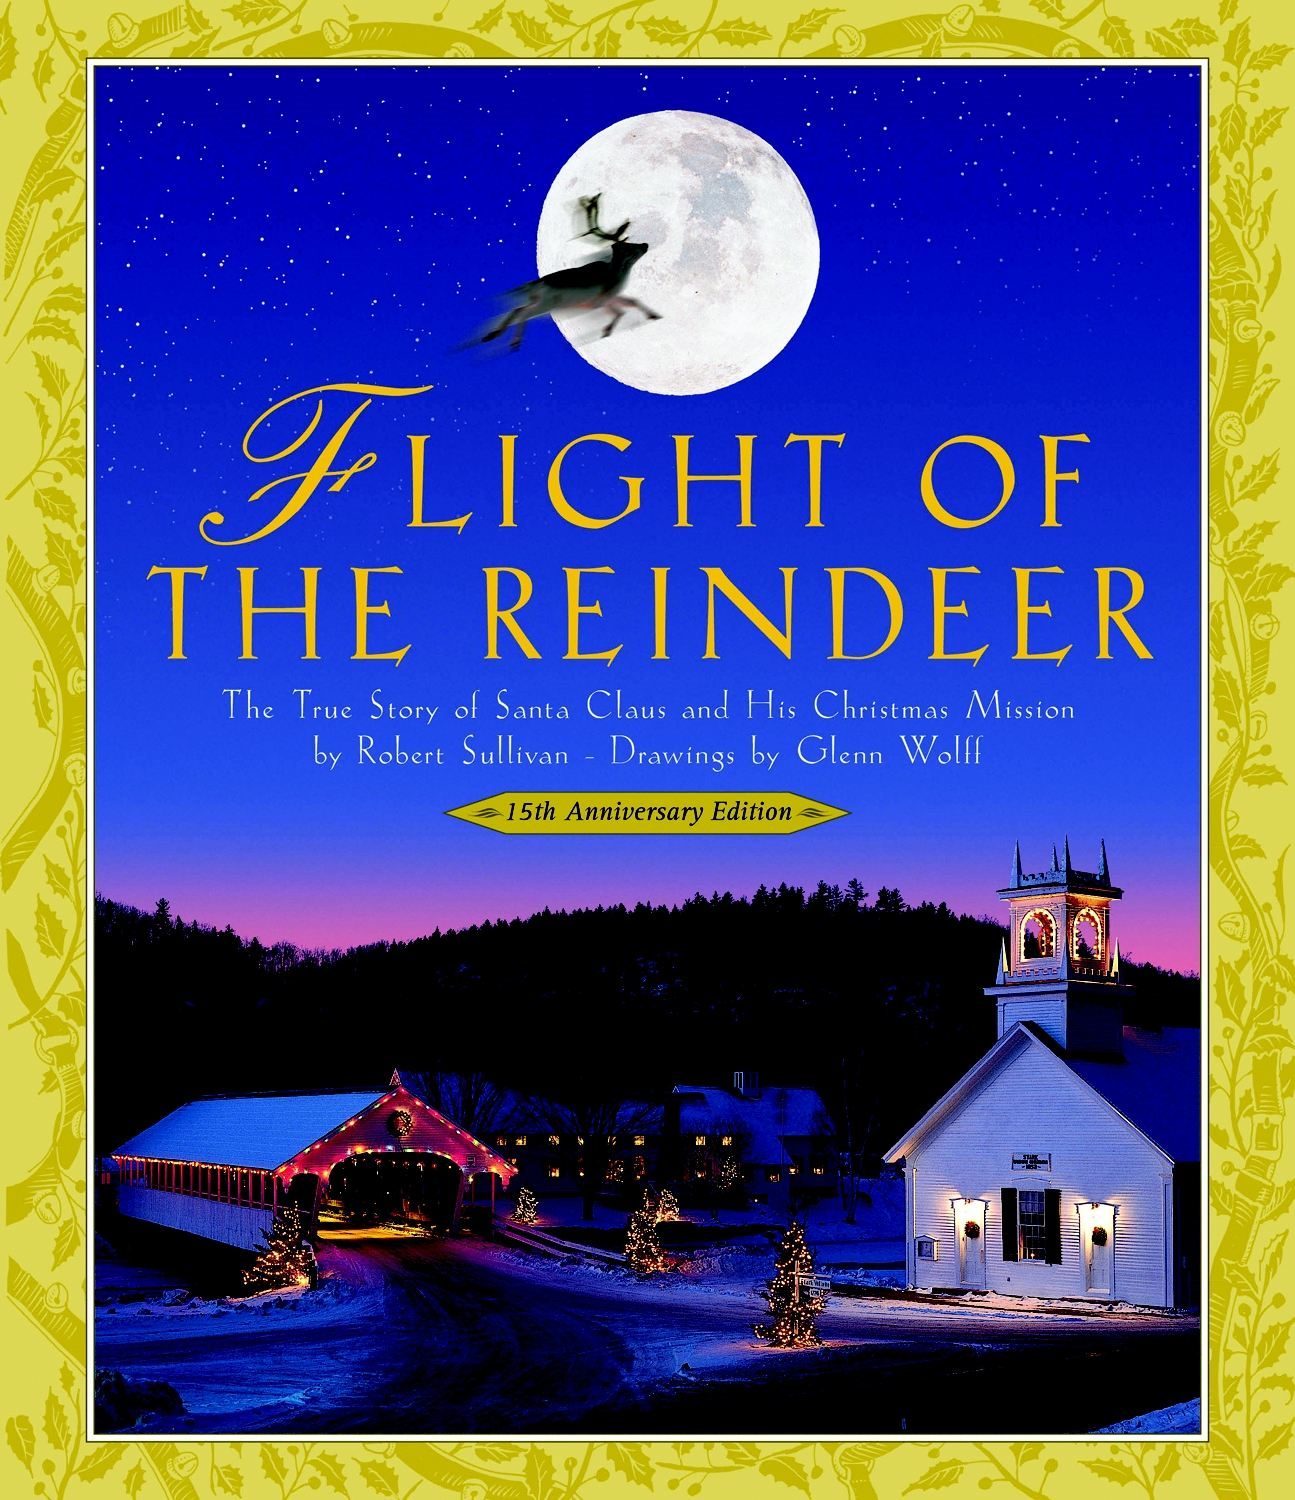 Flight of the Reindeer, 15th Anniversary Edition: The True Story of Santa Claus and His Christmas Mission By: Robert Sullivan